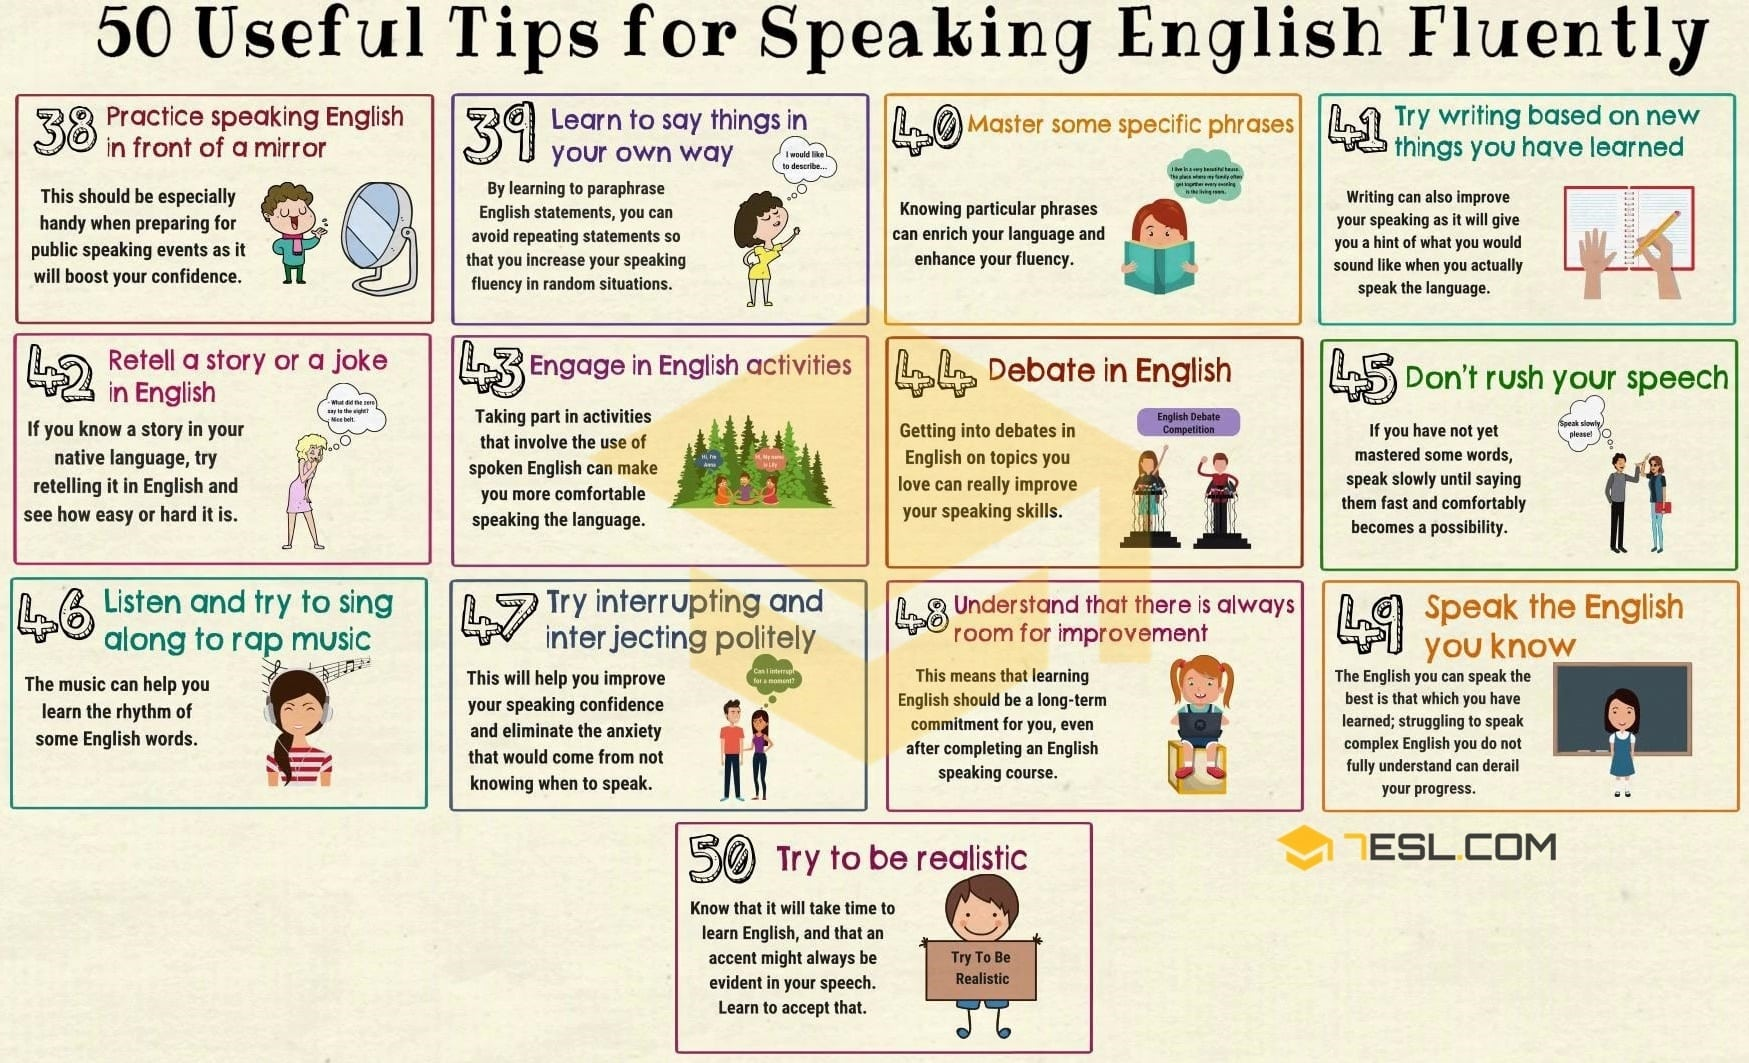 How to Speak English: Useful English Speaking Tips | Image 4